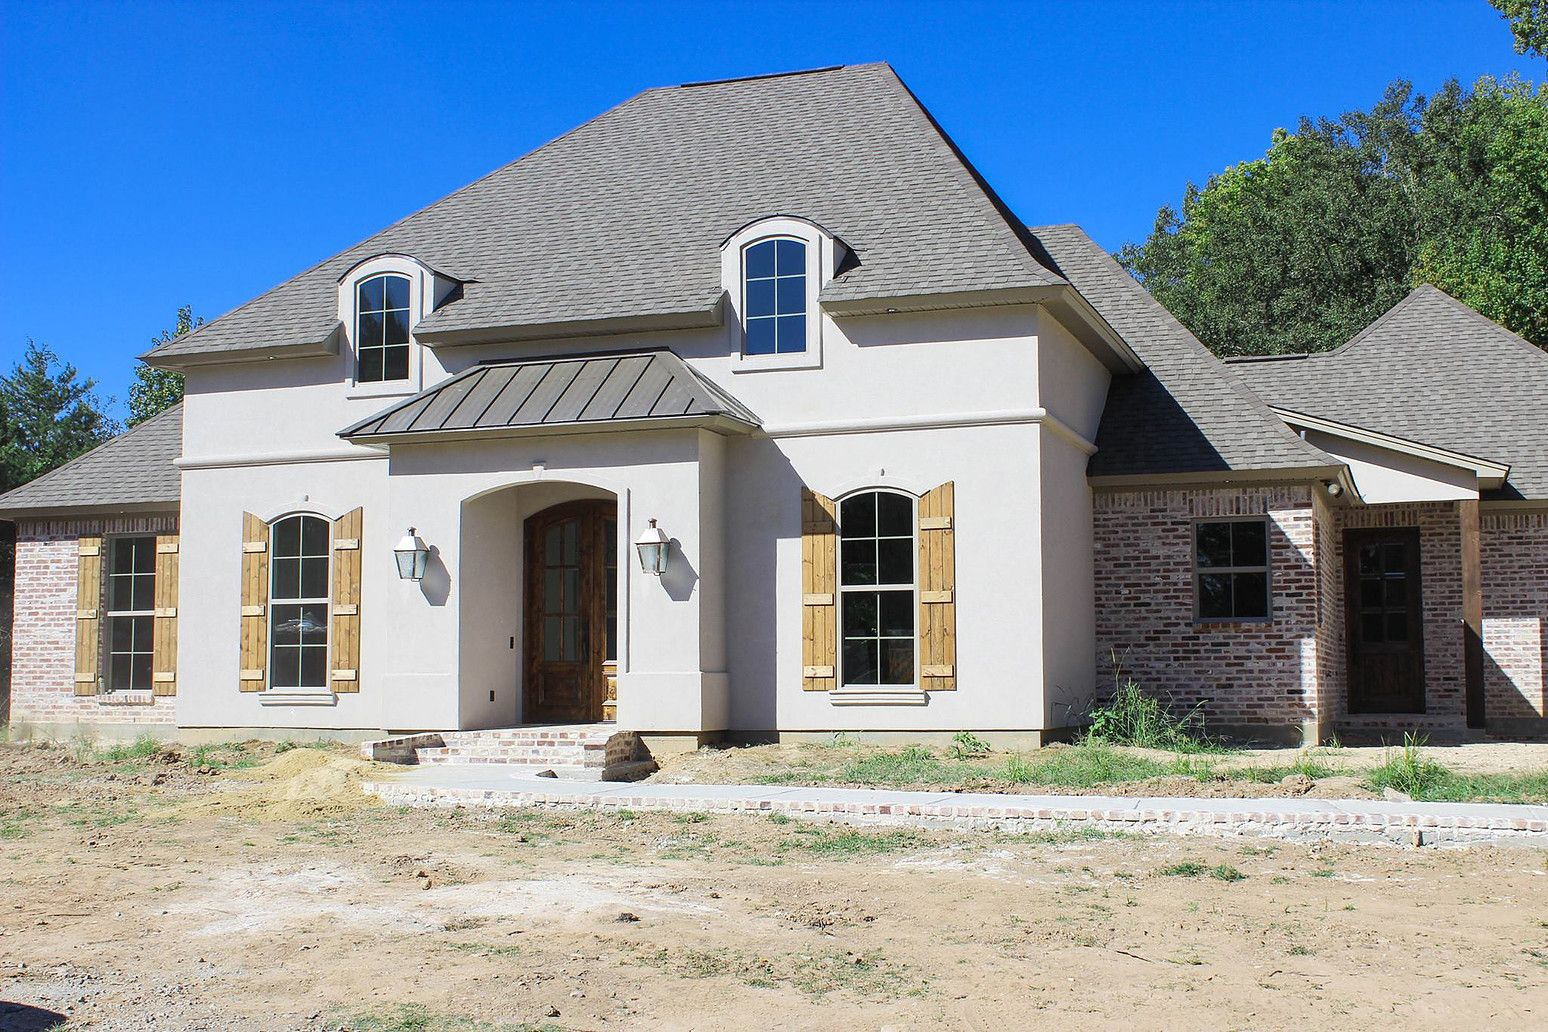 Madden Home Design - Acadian House Plans, French Country ...